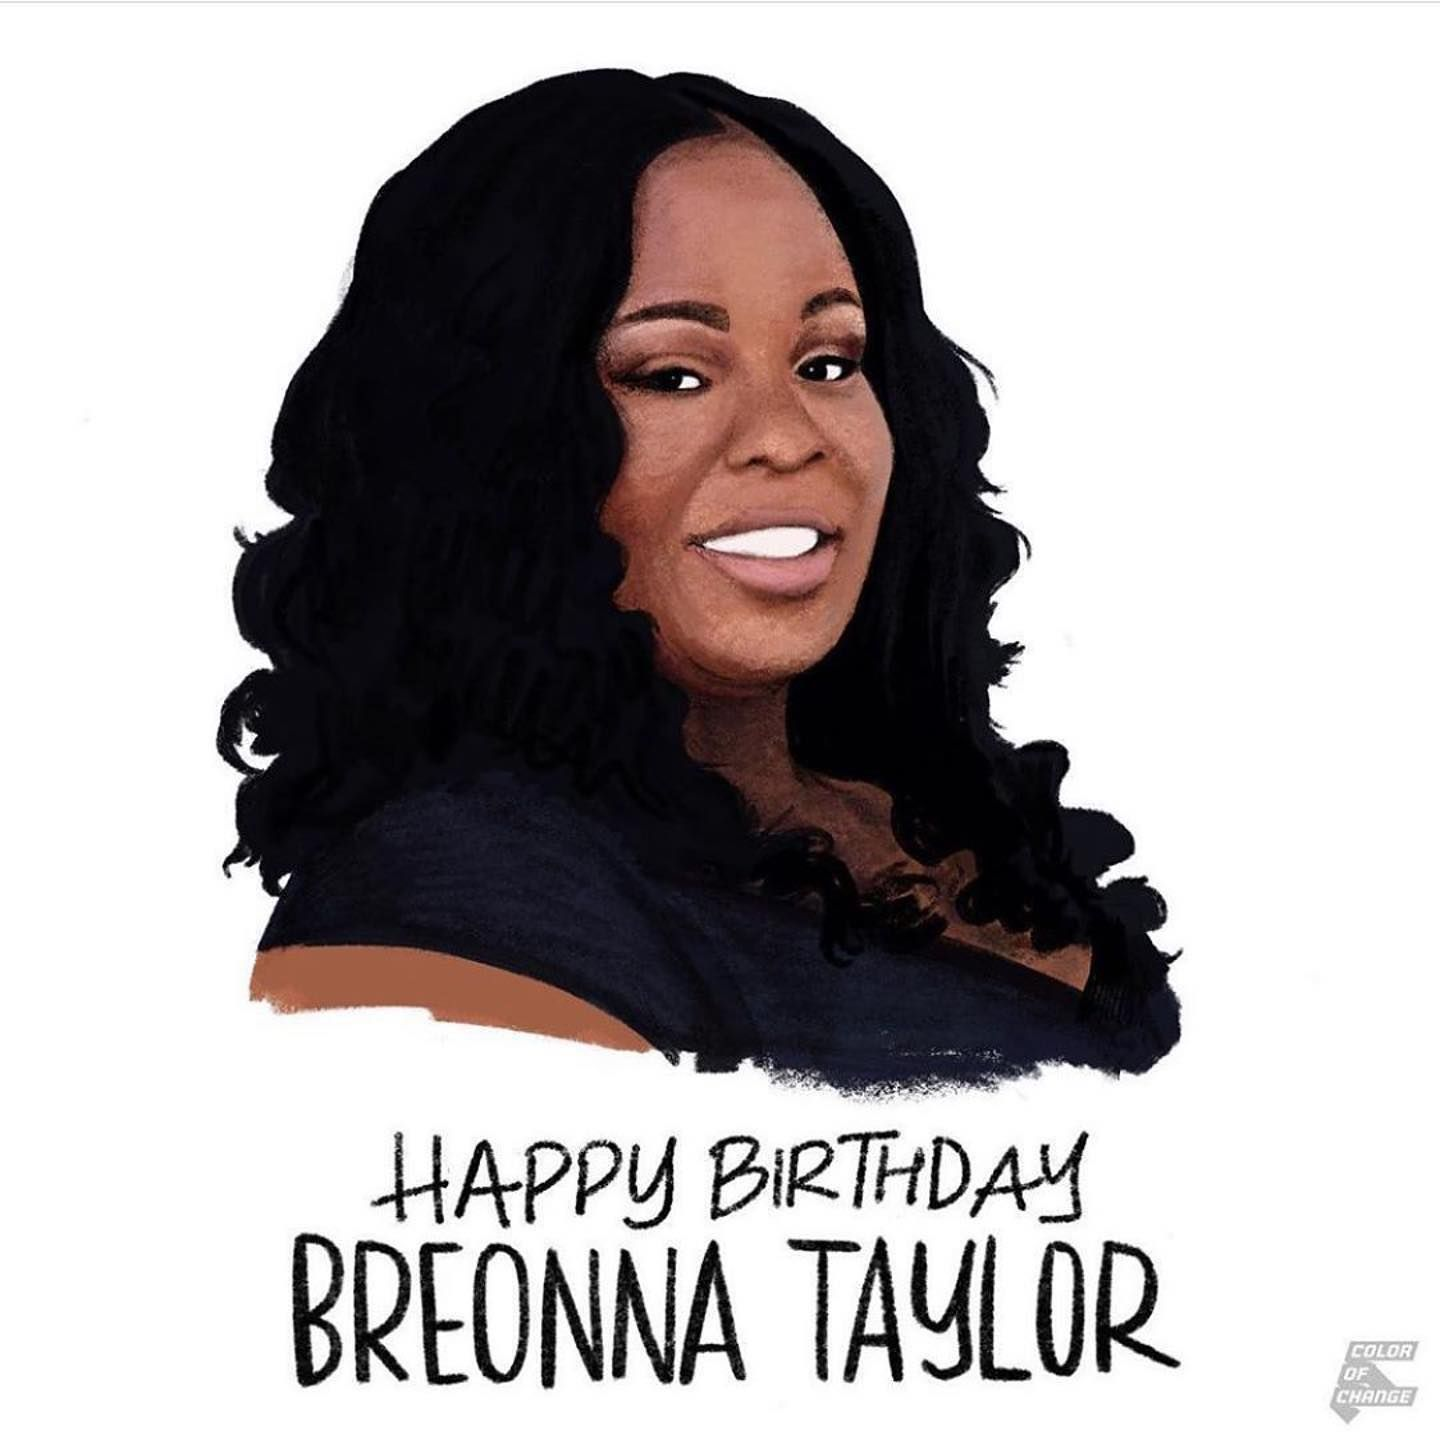 Happy Birthday Breonna Taylor Sayhername You Would Have Been 27 Today Breonna Was Killed In Her Home In 2020 Breonna Taylor Black Lives Matter Black Lives